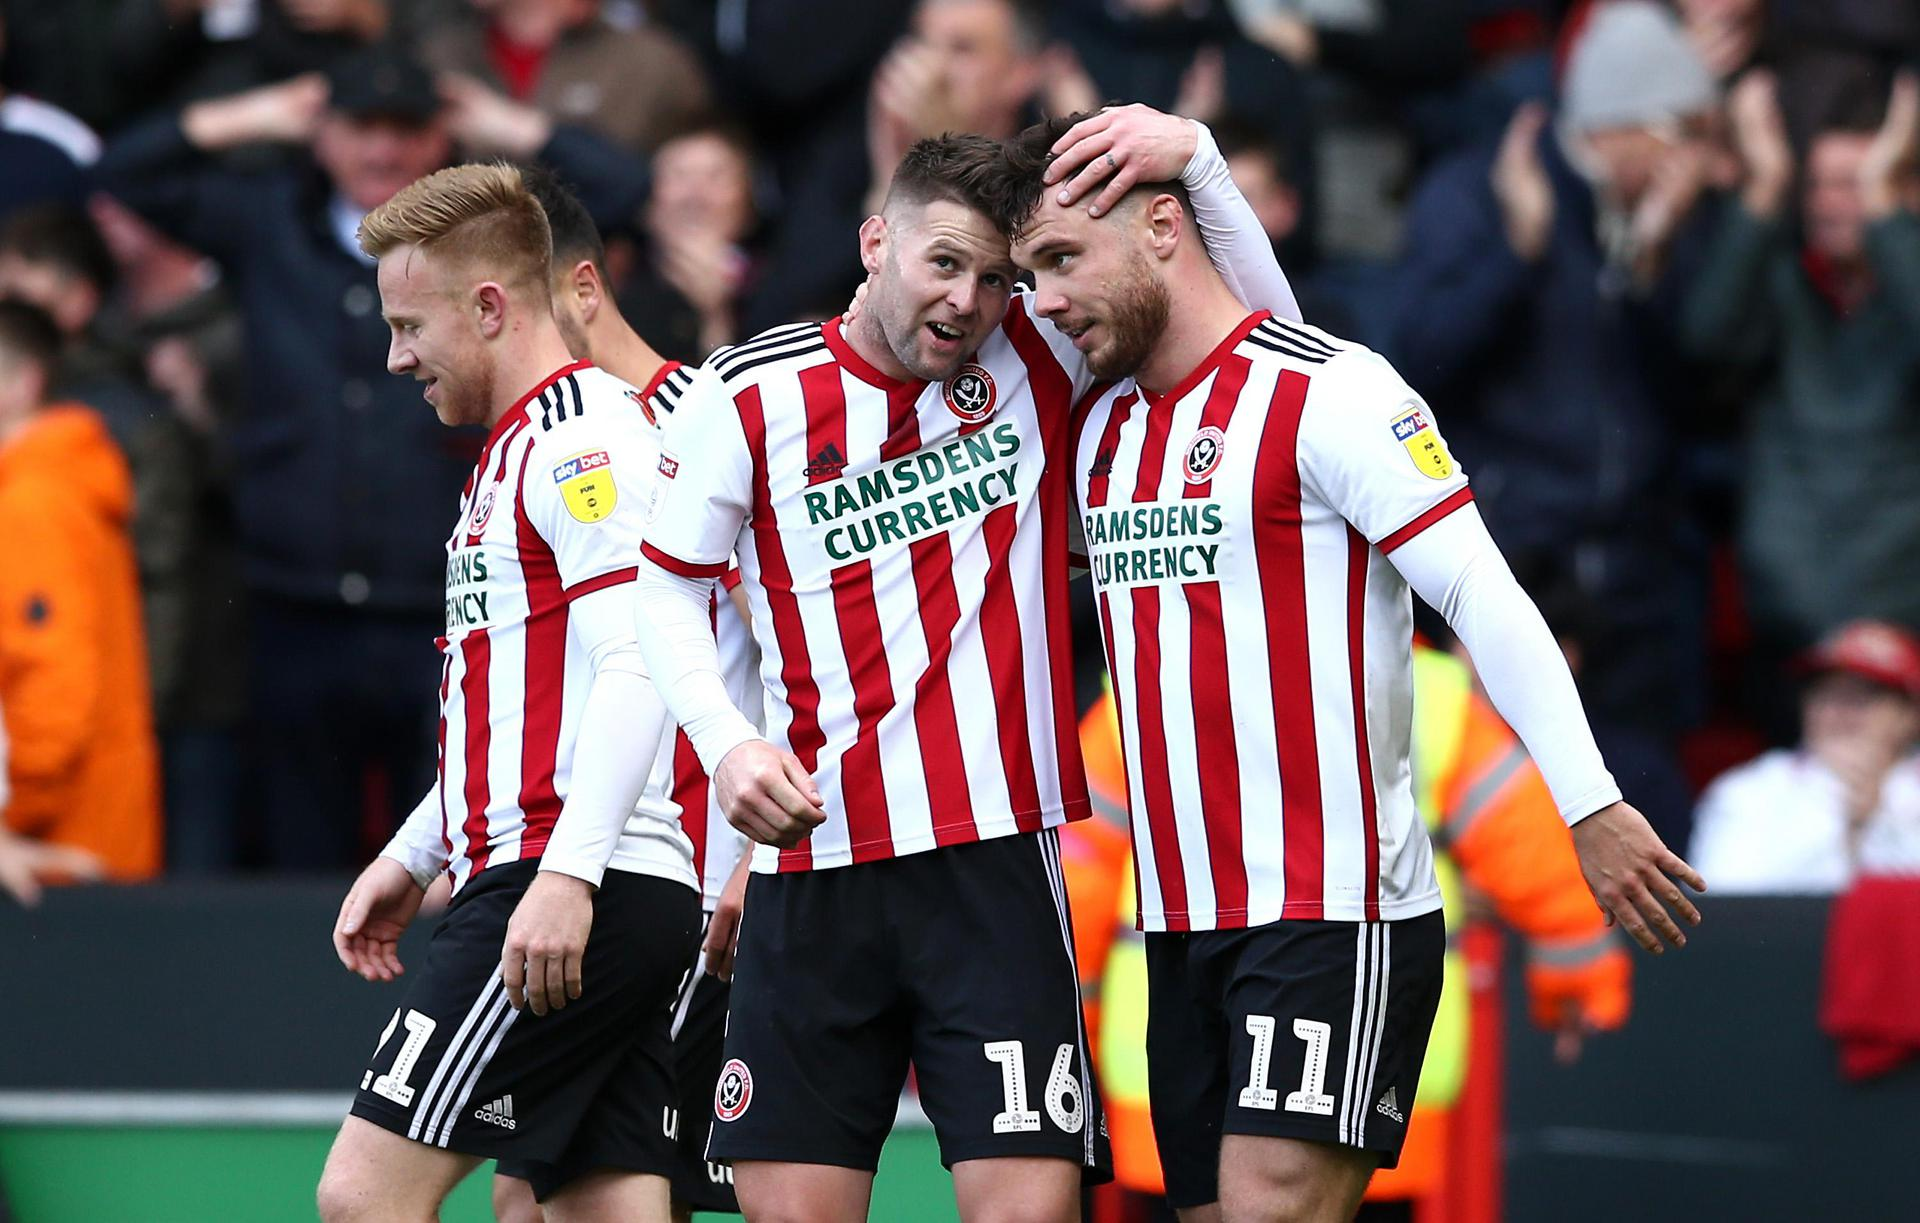 Sheffield United celebrate scoring a goal.